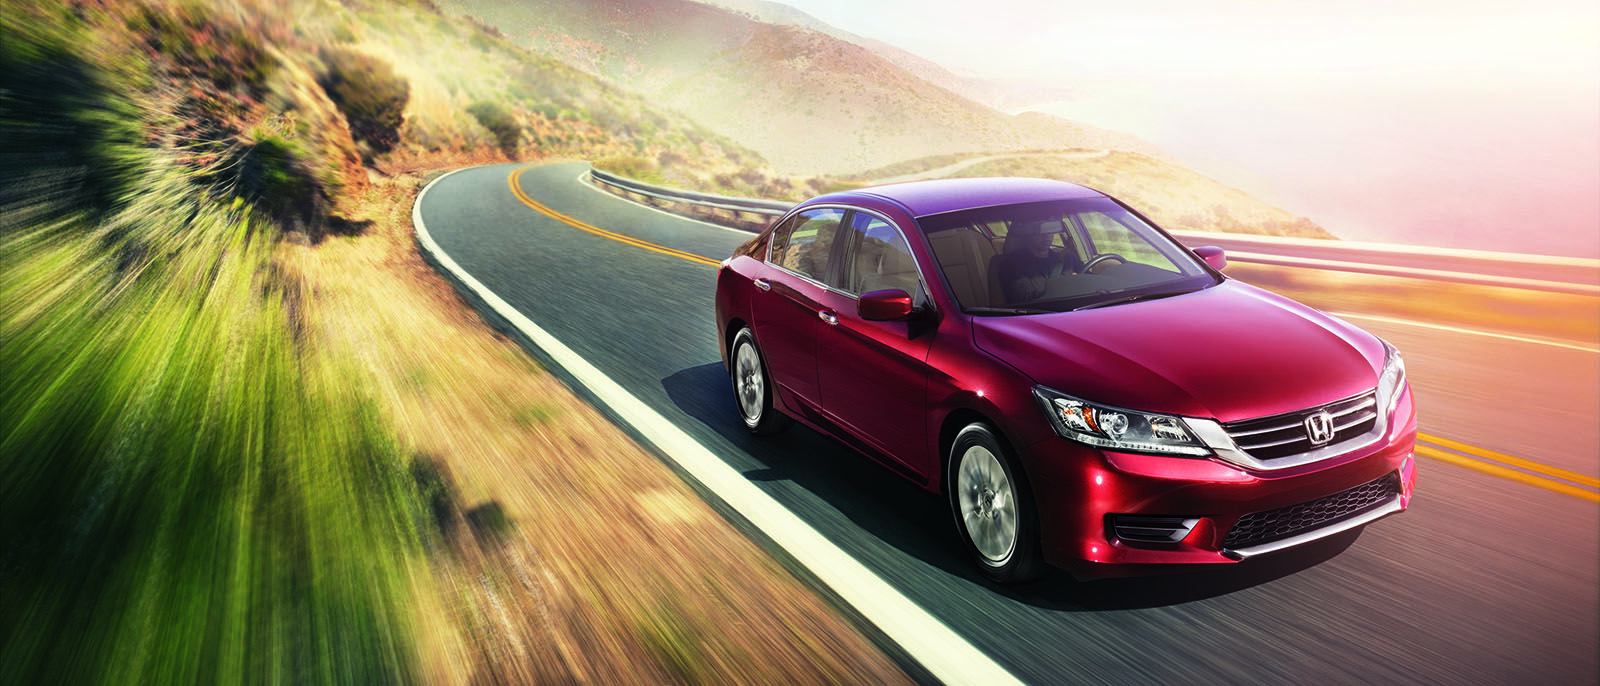 2014 Accord Central Florida Find cars for sale, Honda